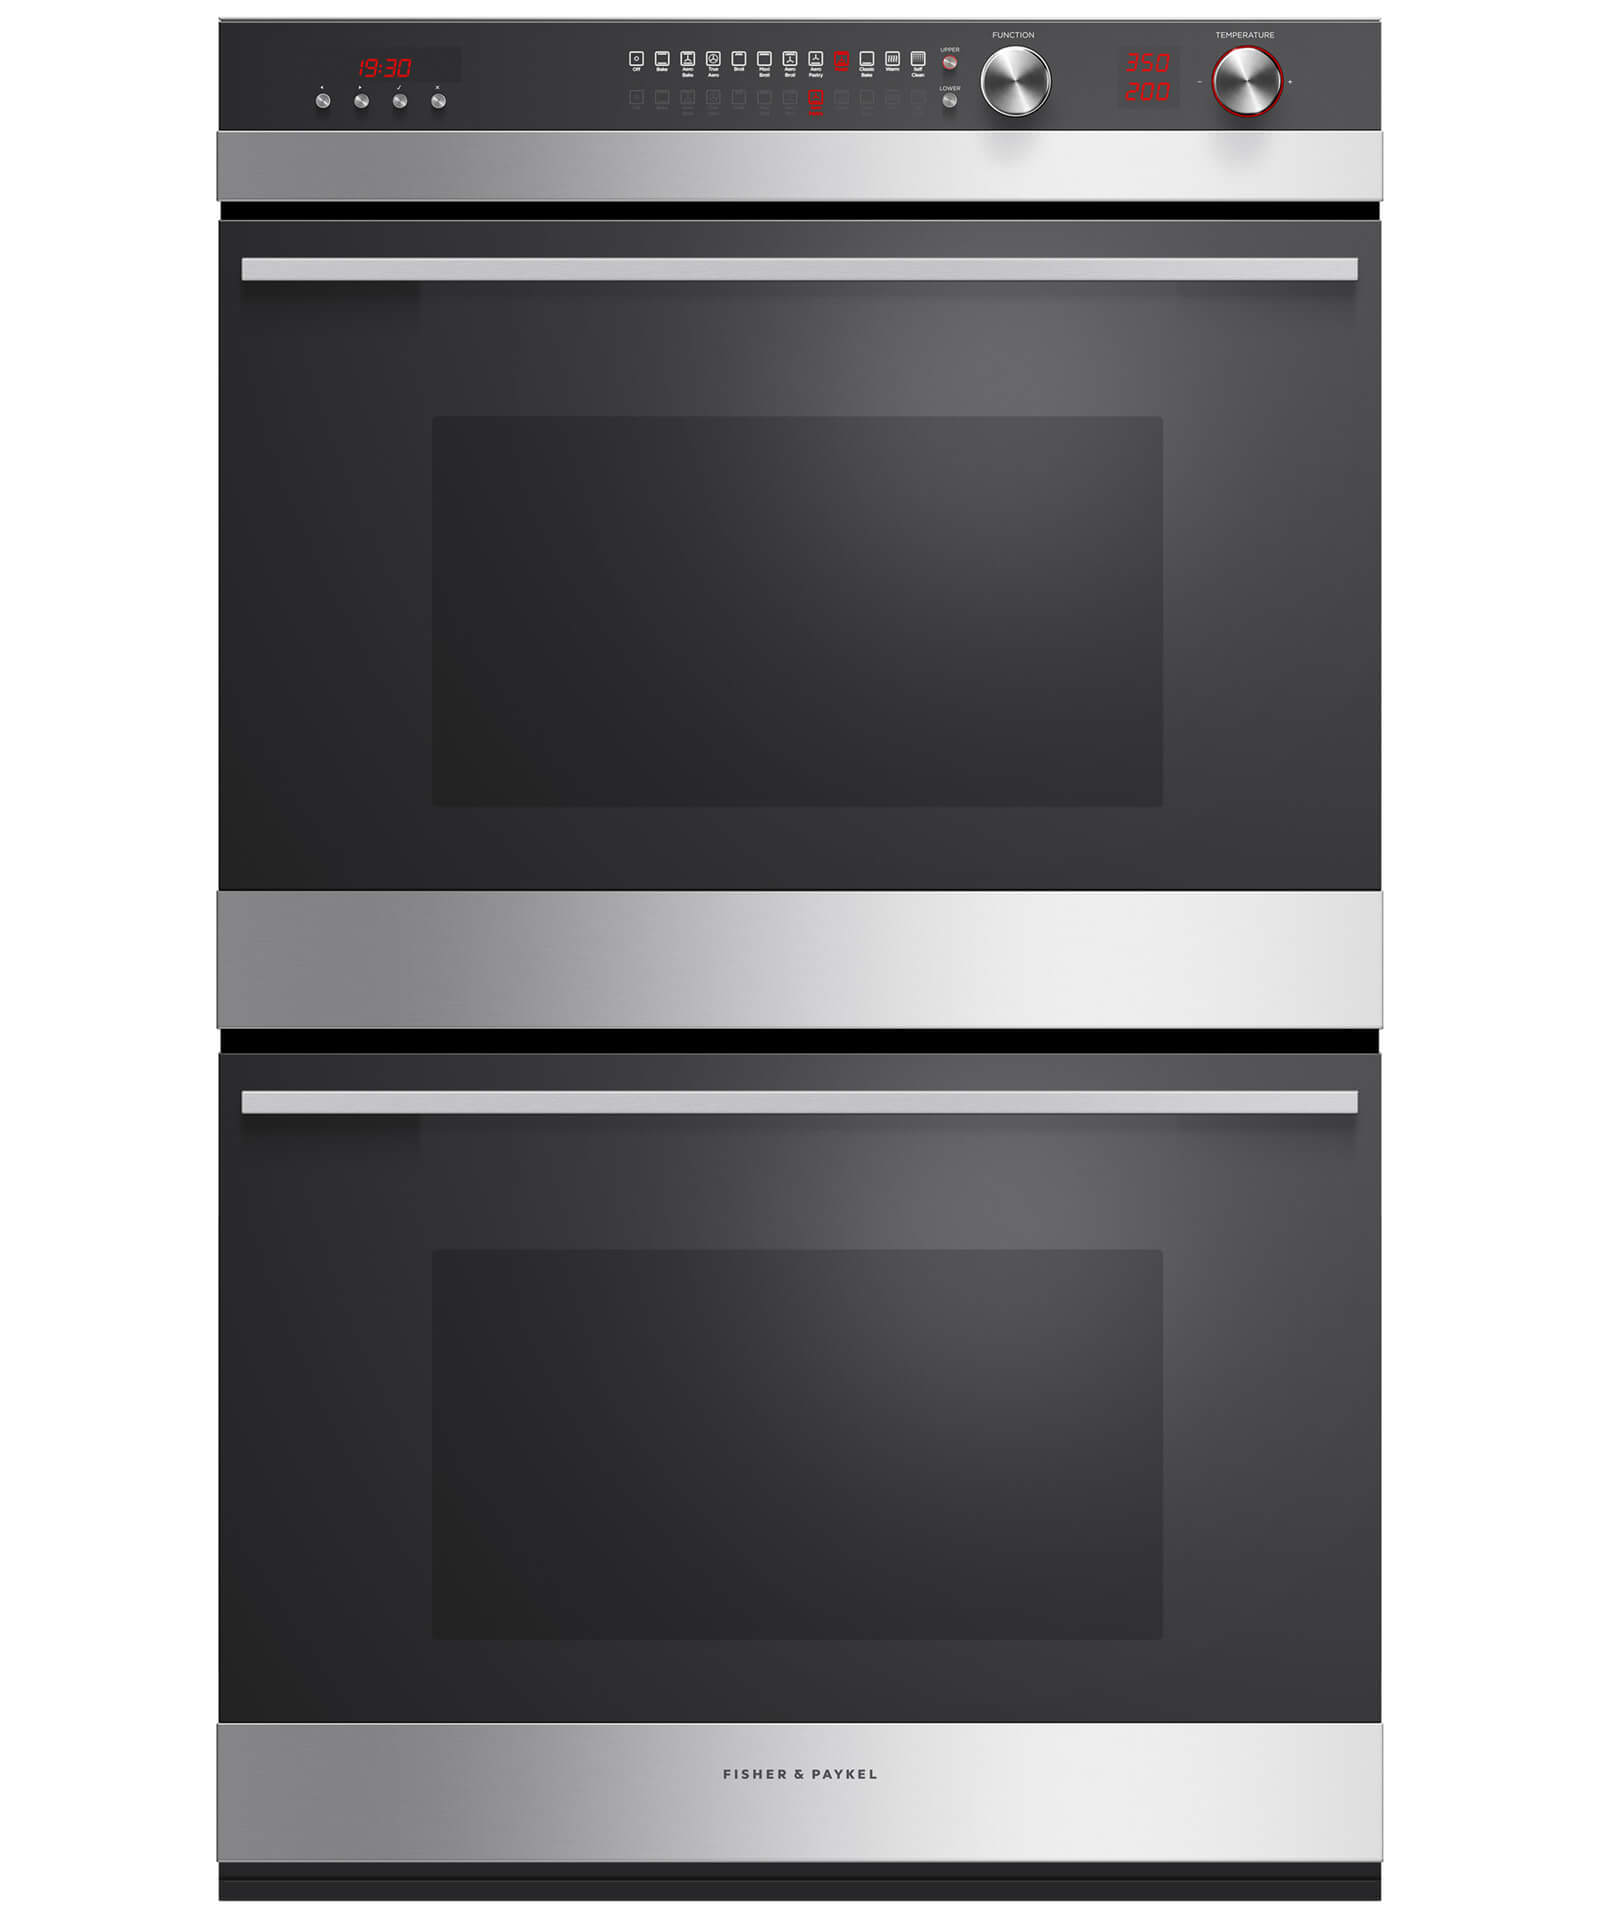 "Fisher and Paykel Double Built-in Oven, 30"" 8.2 cu ft, 11 Function"